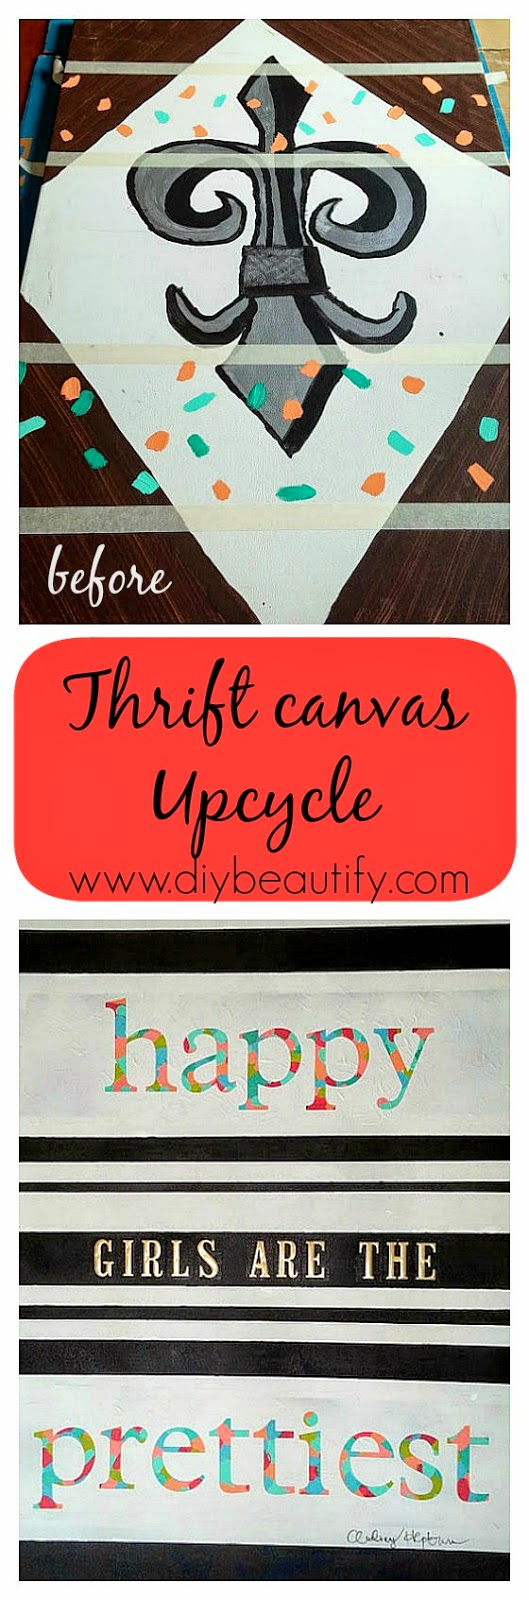 Thrift store canvas upcycle www.diybeautify.com